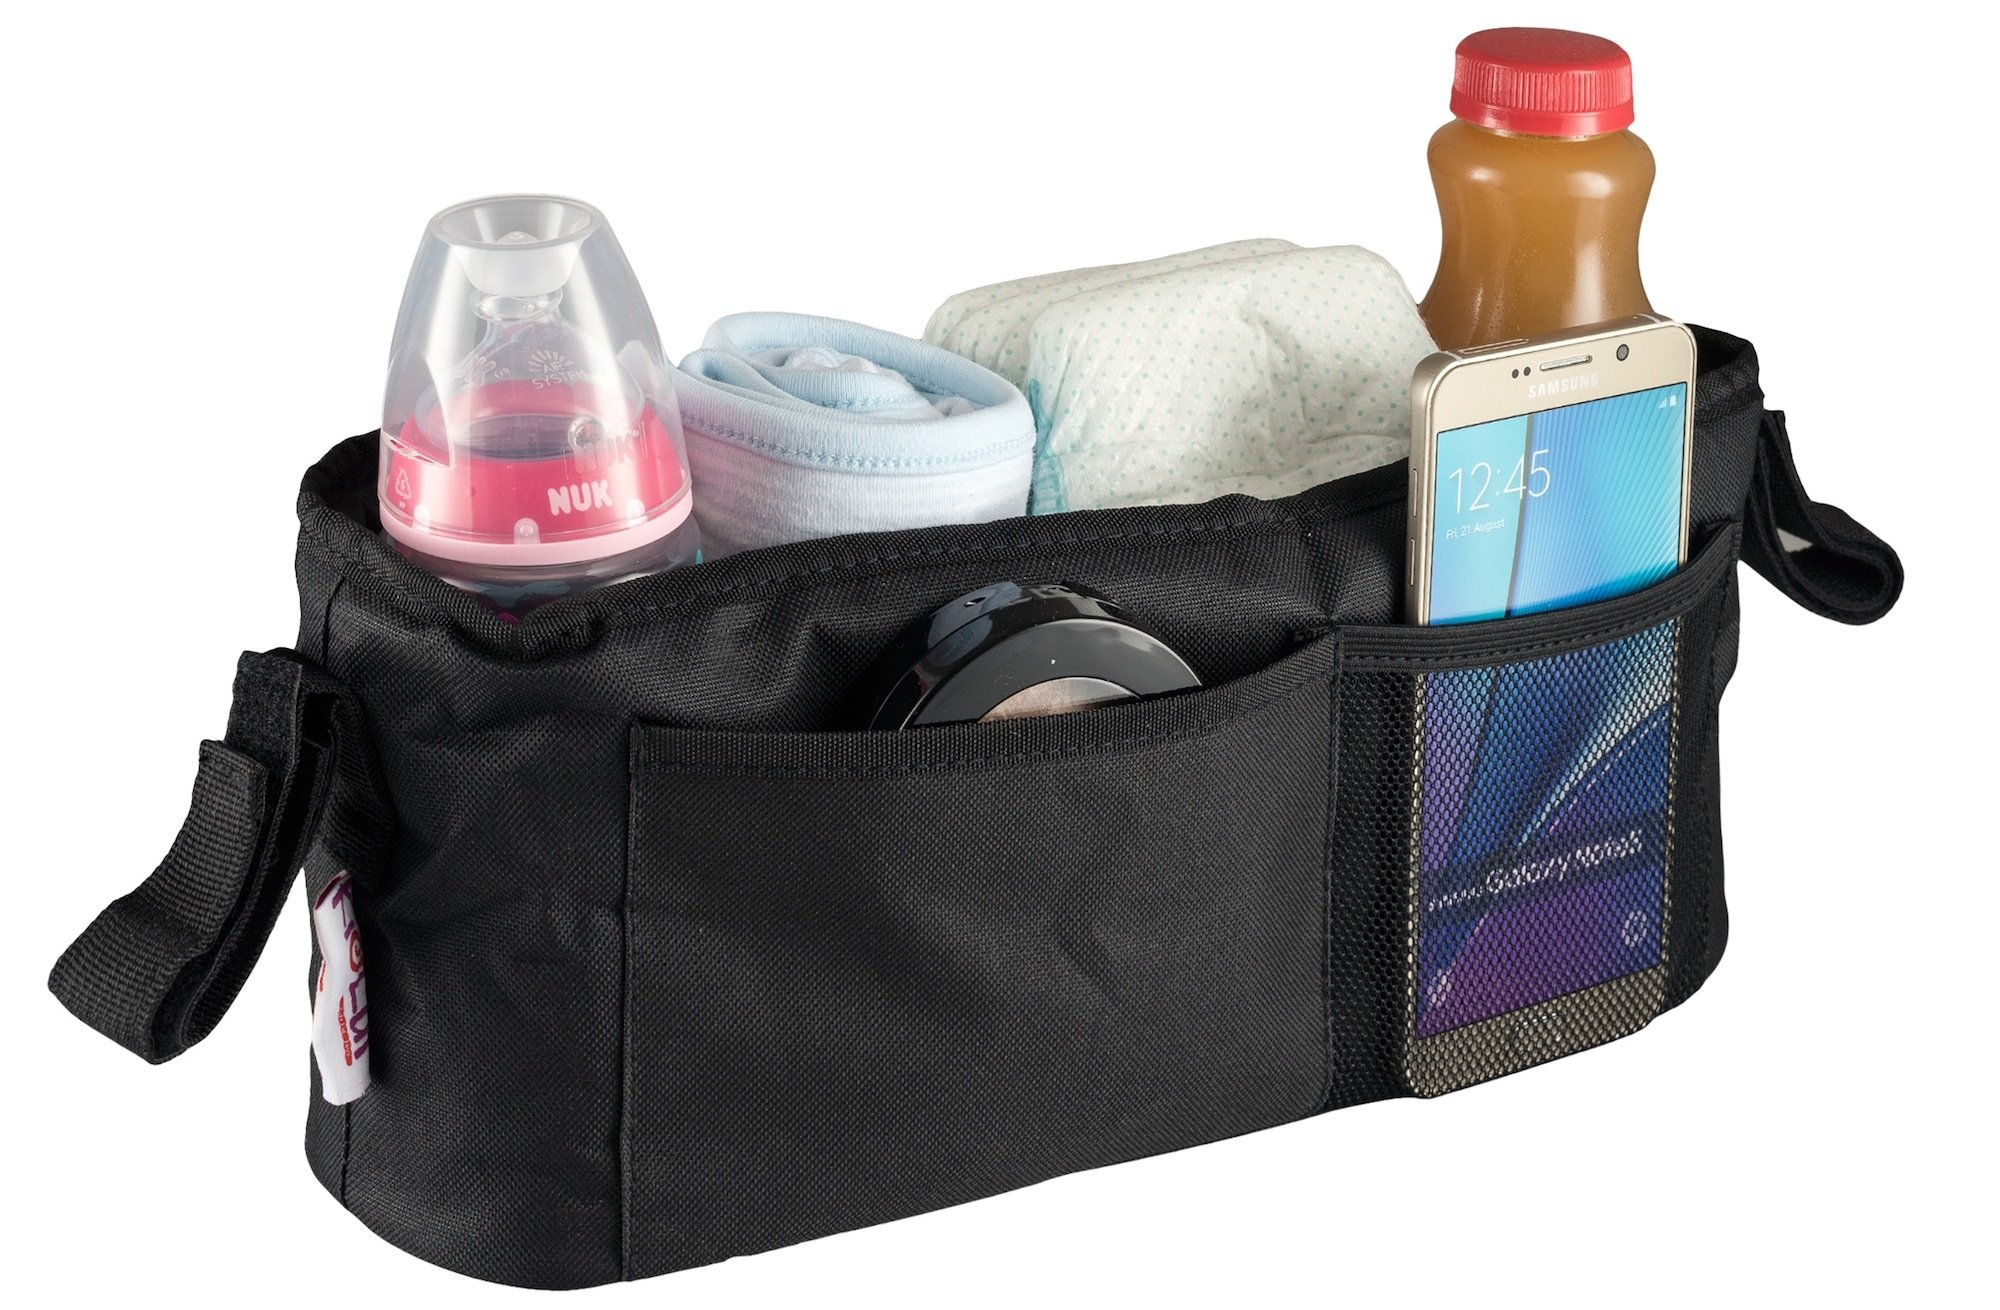 Universal Stroller Organizer Bag By Kidluf - 2 Cup Holders & Accessories Storage Bag for Strollers - With Front Pocket for Cell Phone (Black)